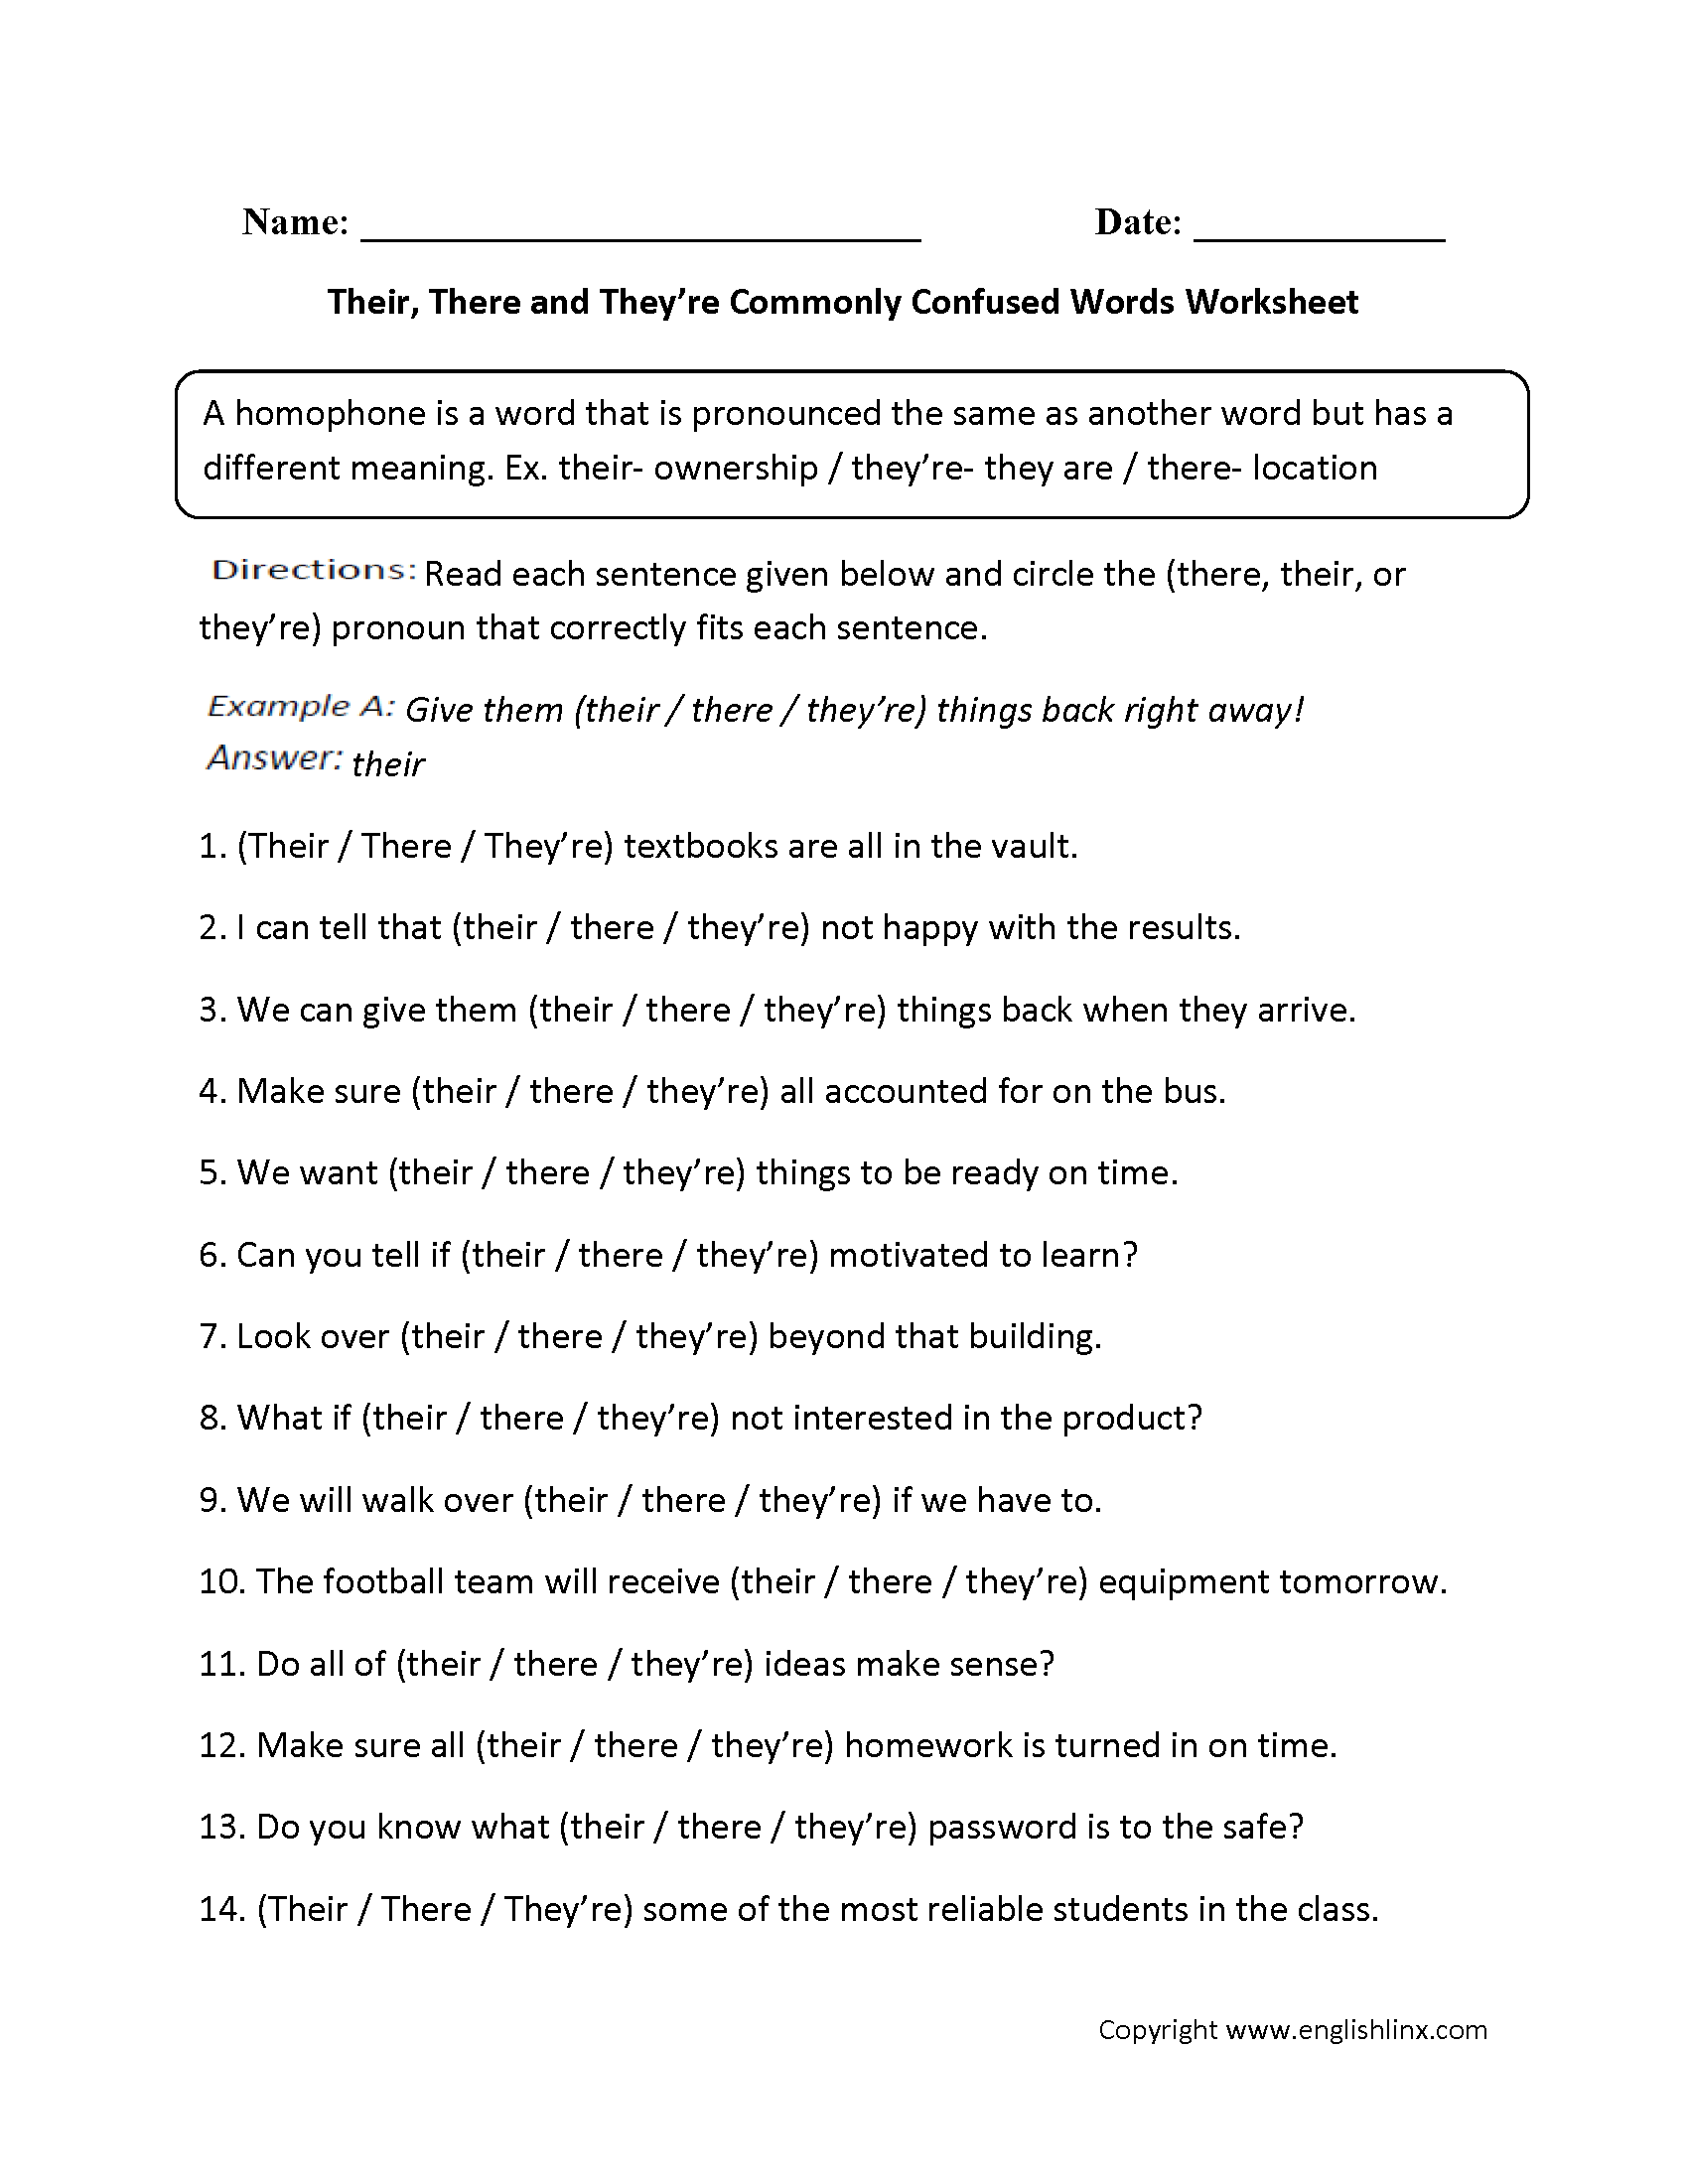 Their There They Re Commonly Confused Words Worksheets